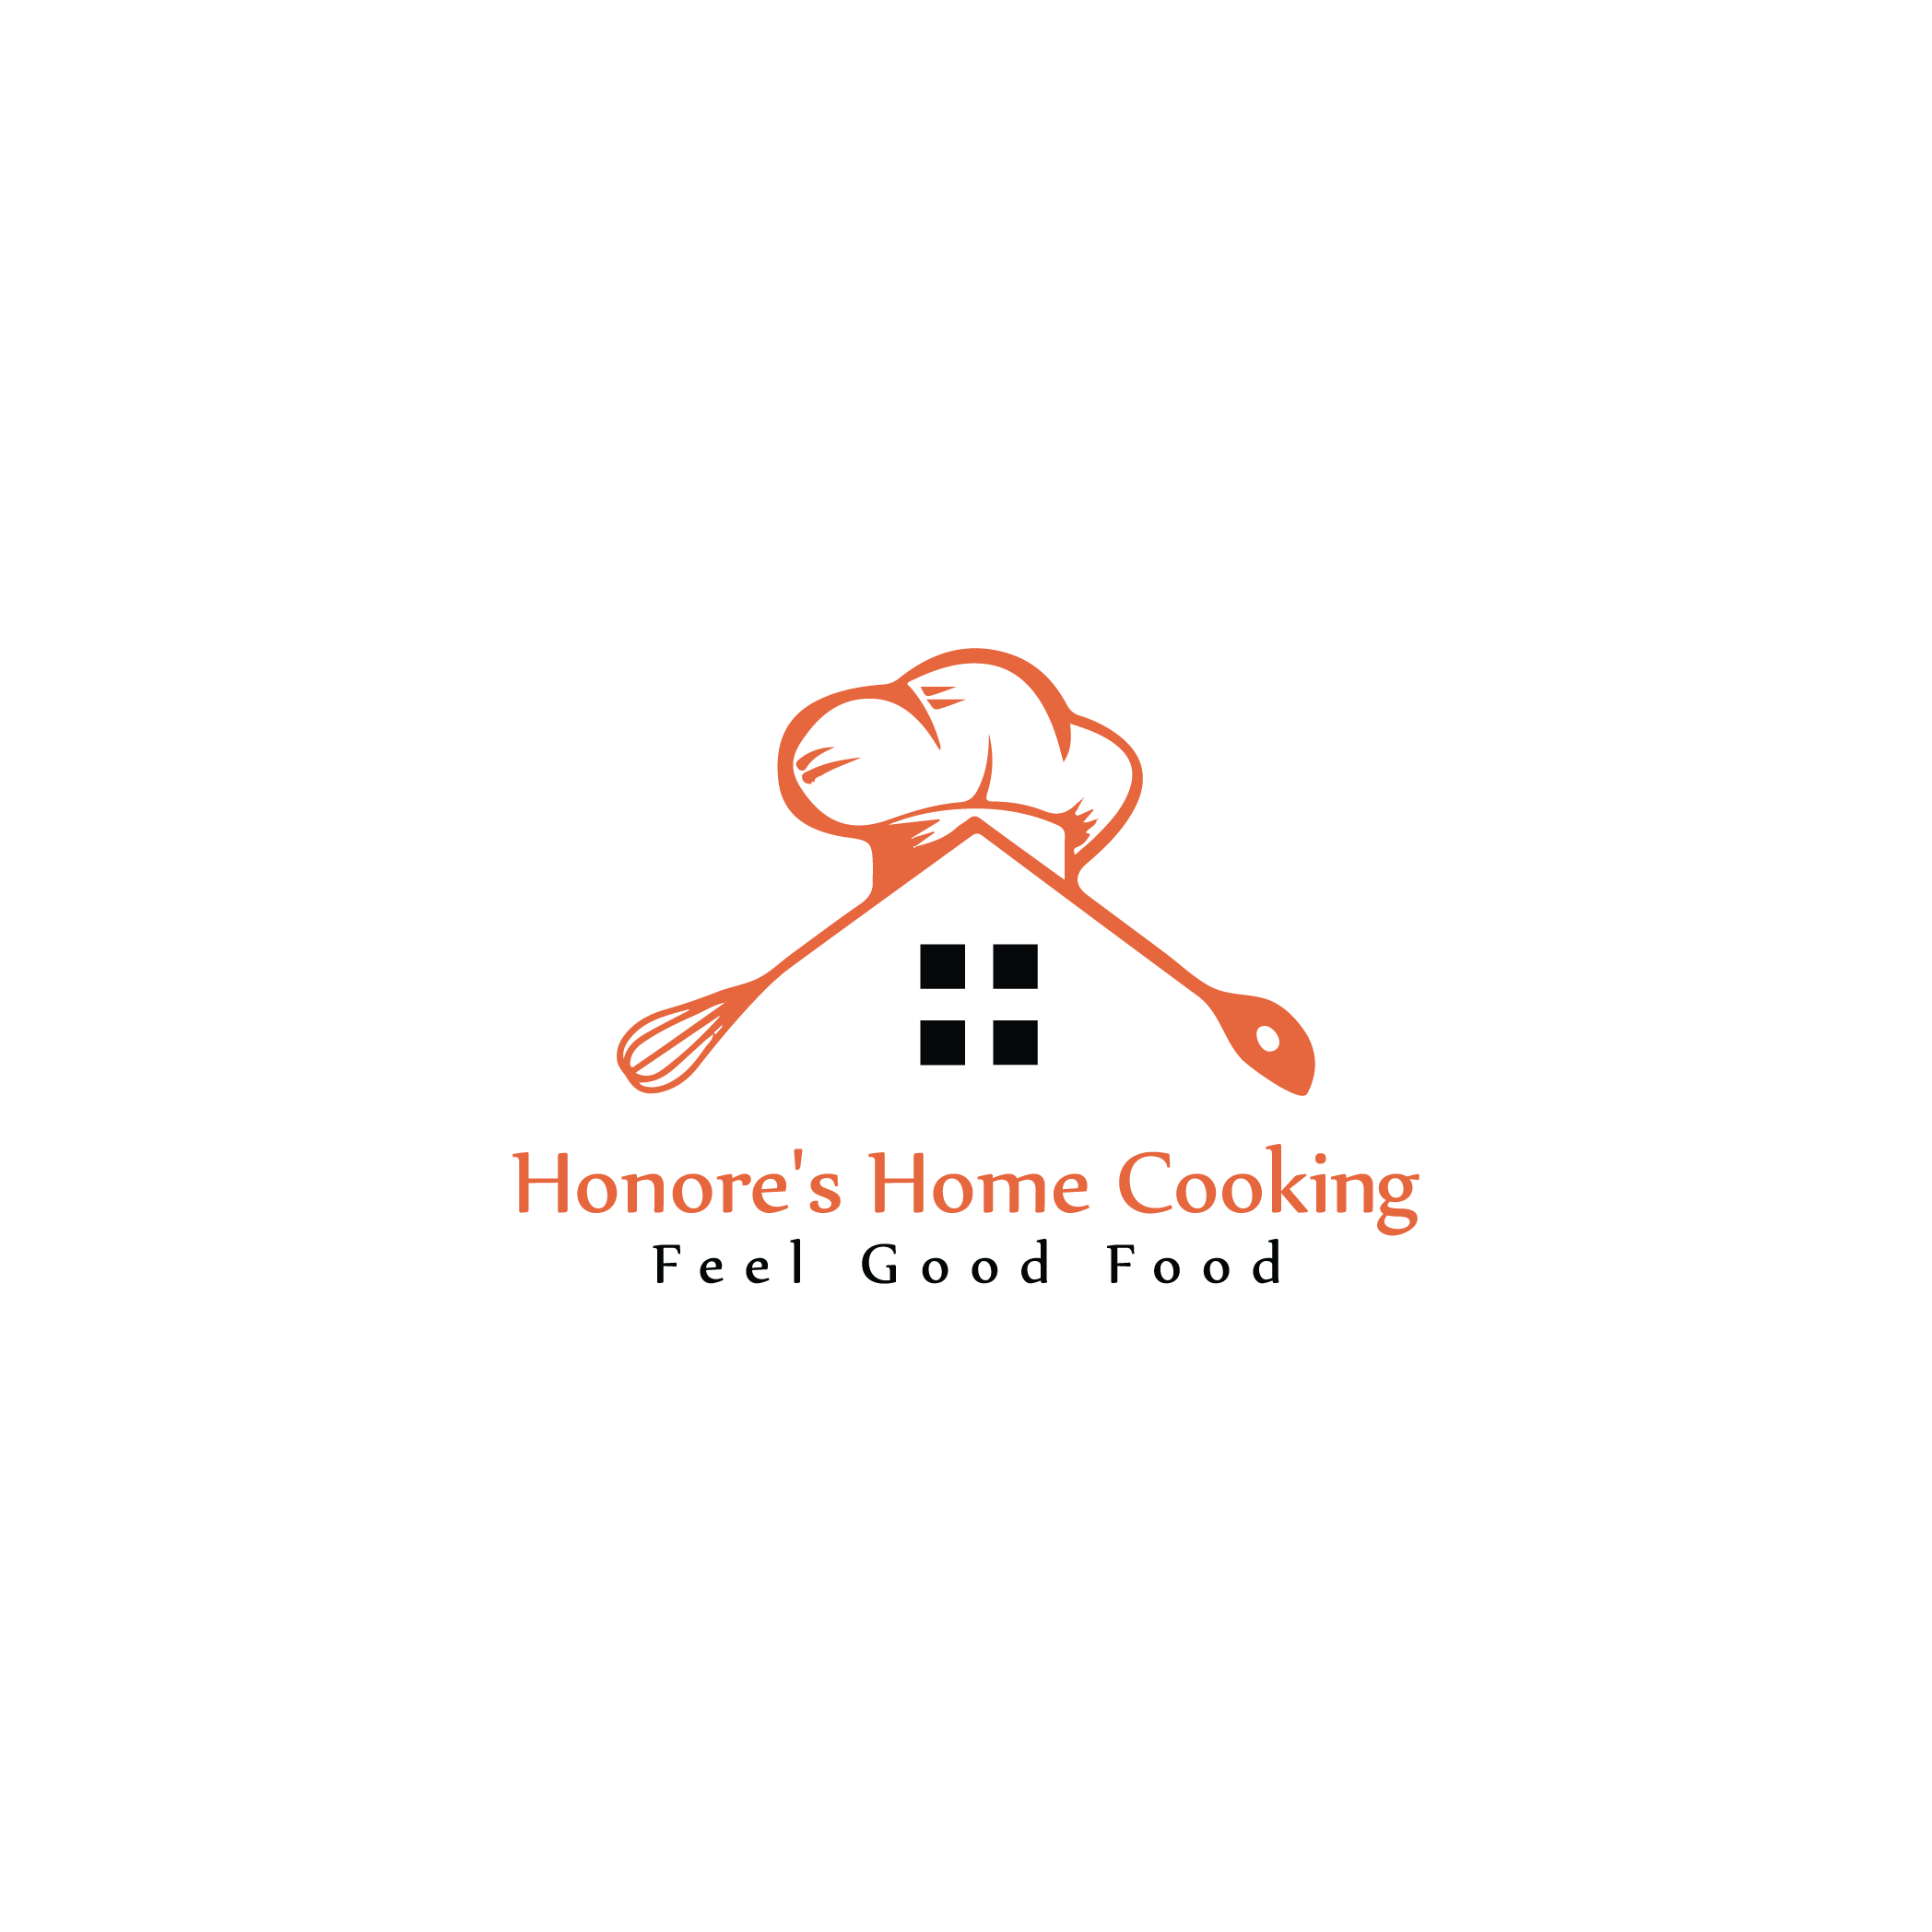 Honore's Home Cooking